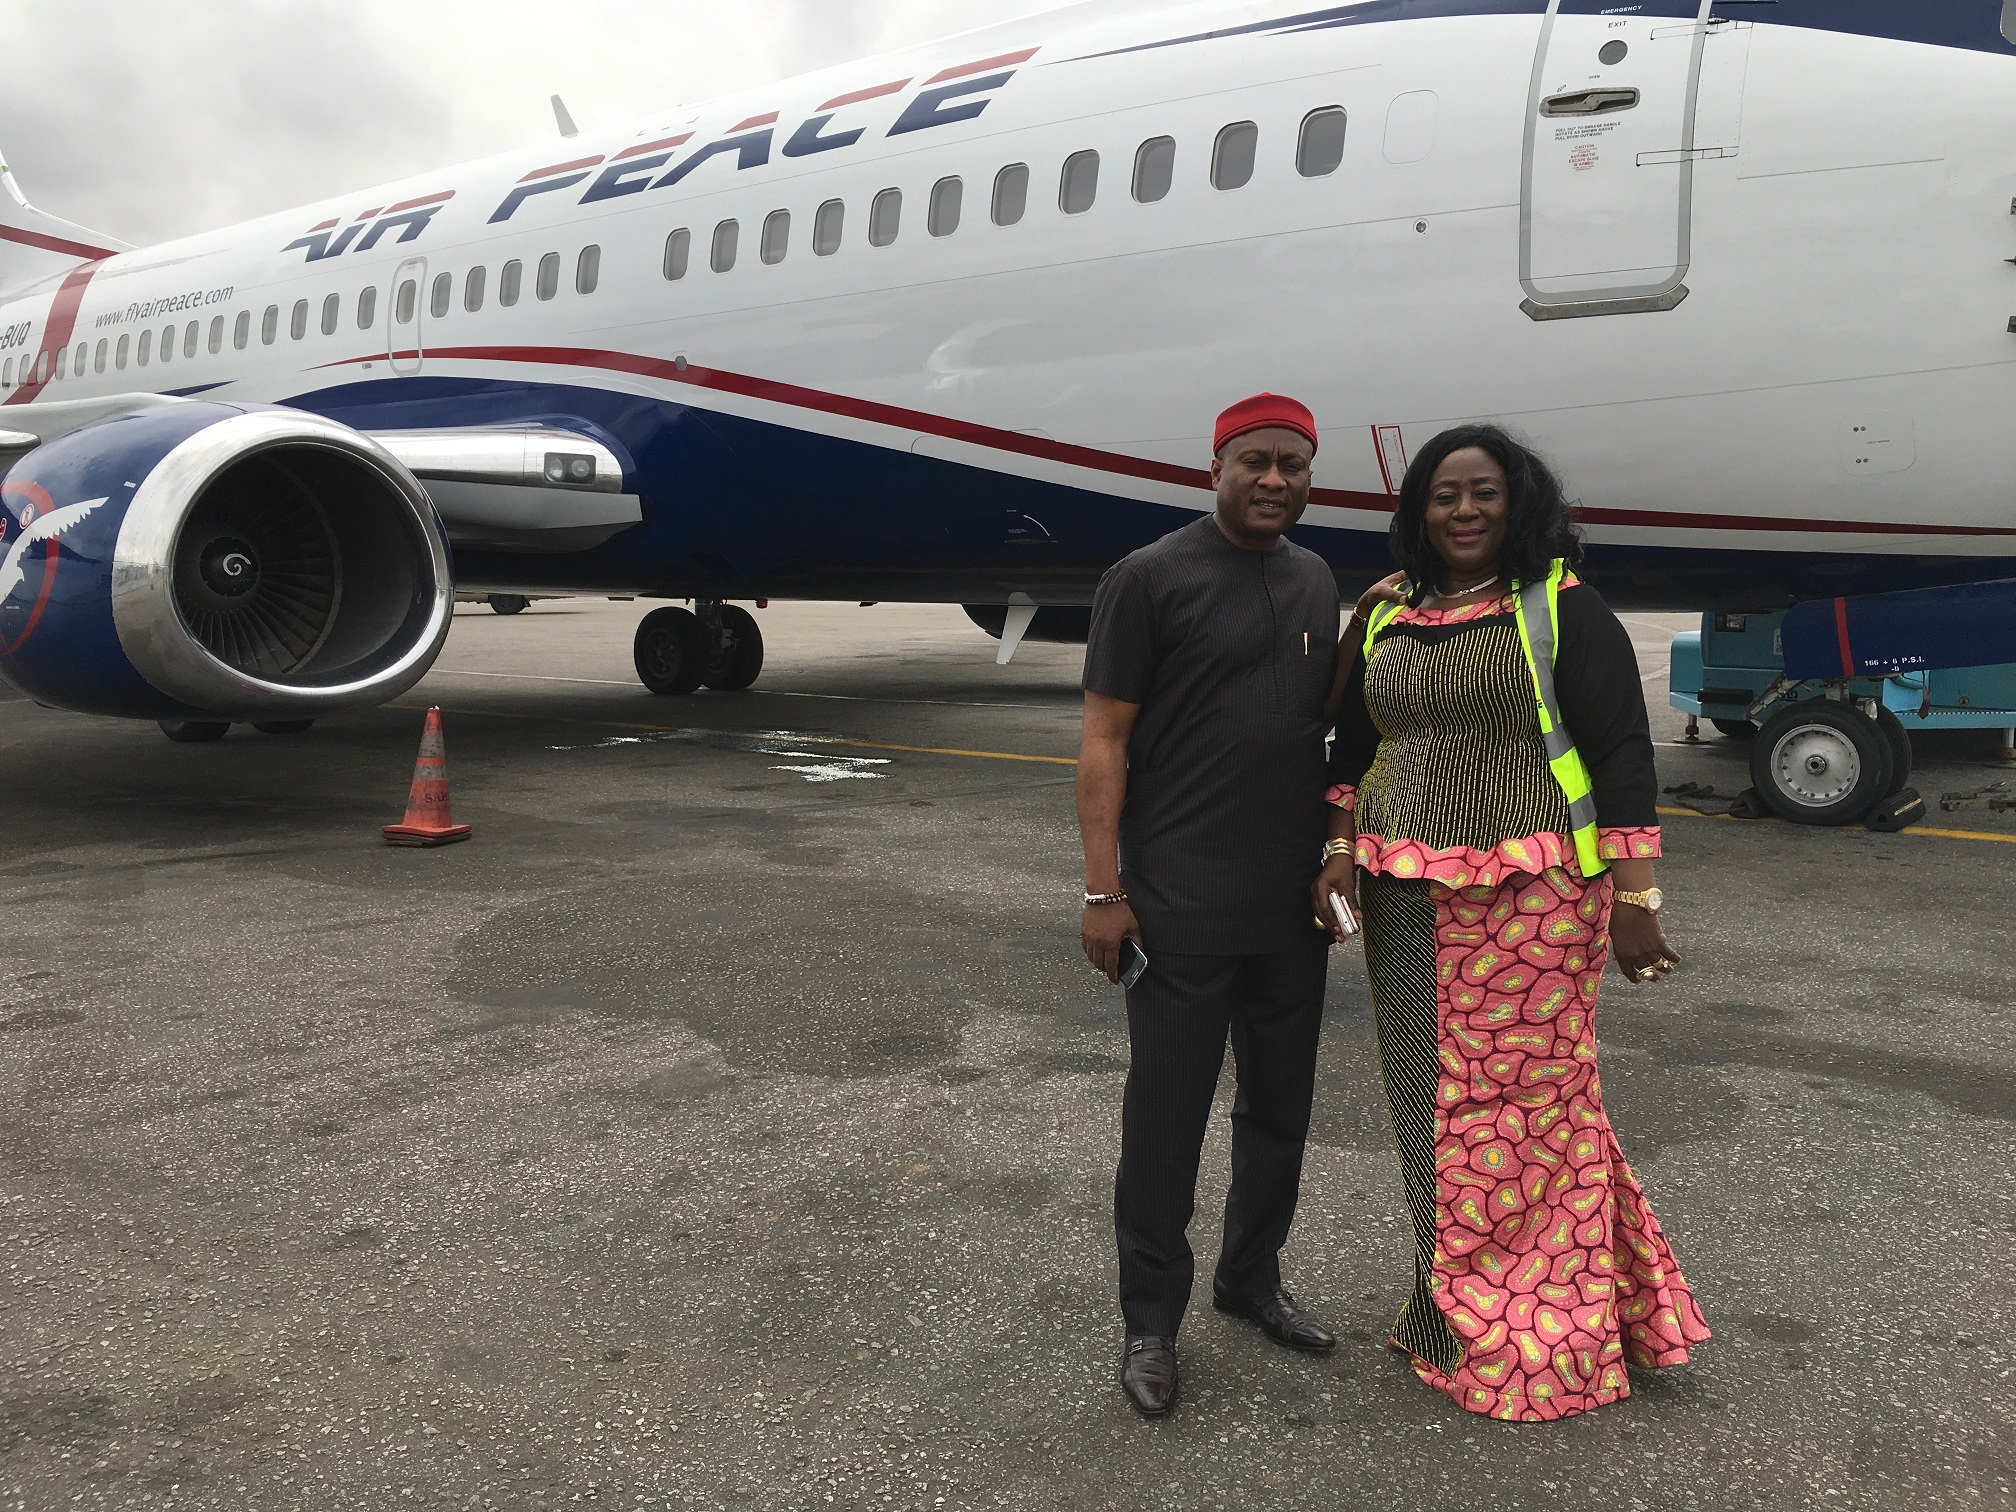 Chairman/Chief Executive Officer of Air Peace, Mr. Allen Onyema and his wife, Alice at the Murtala Muhammed Airport, Lagos during the arrival of the airline's 13th aircraft, a B737-300 on Friday